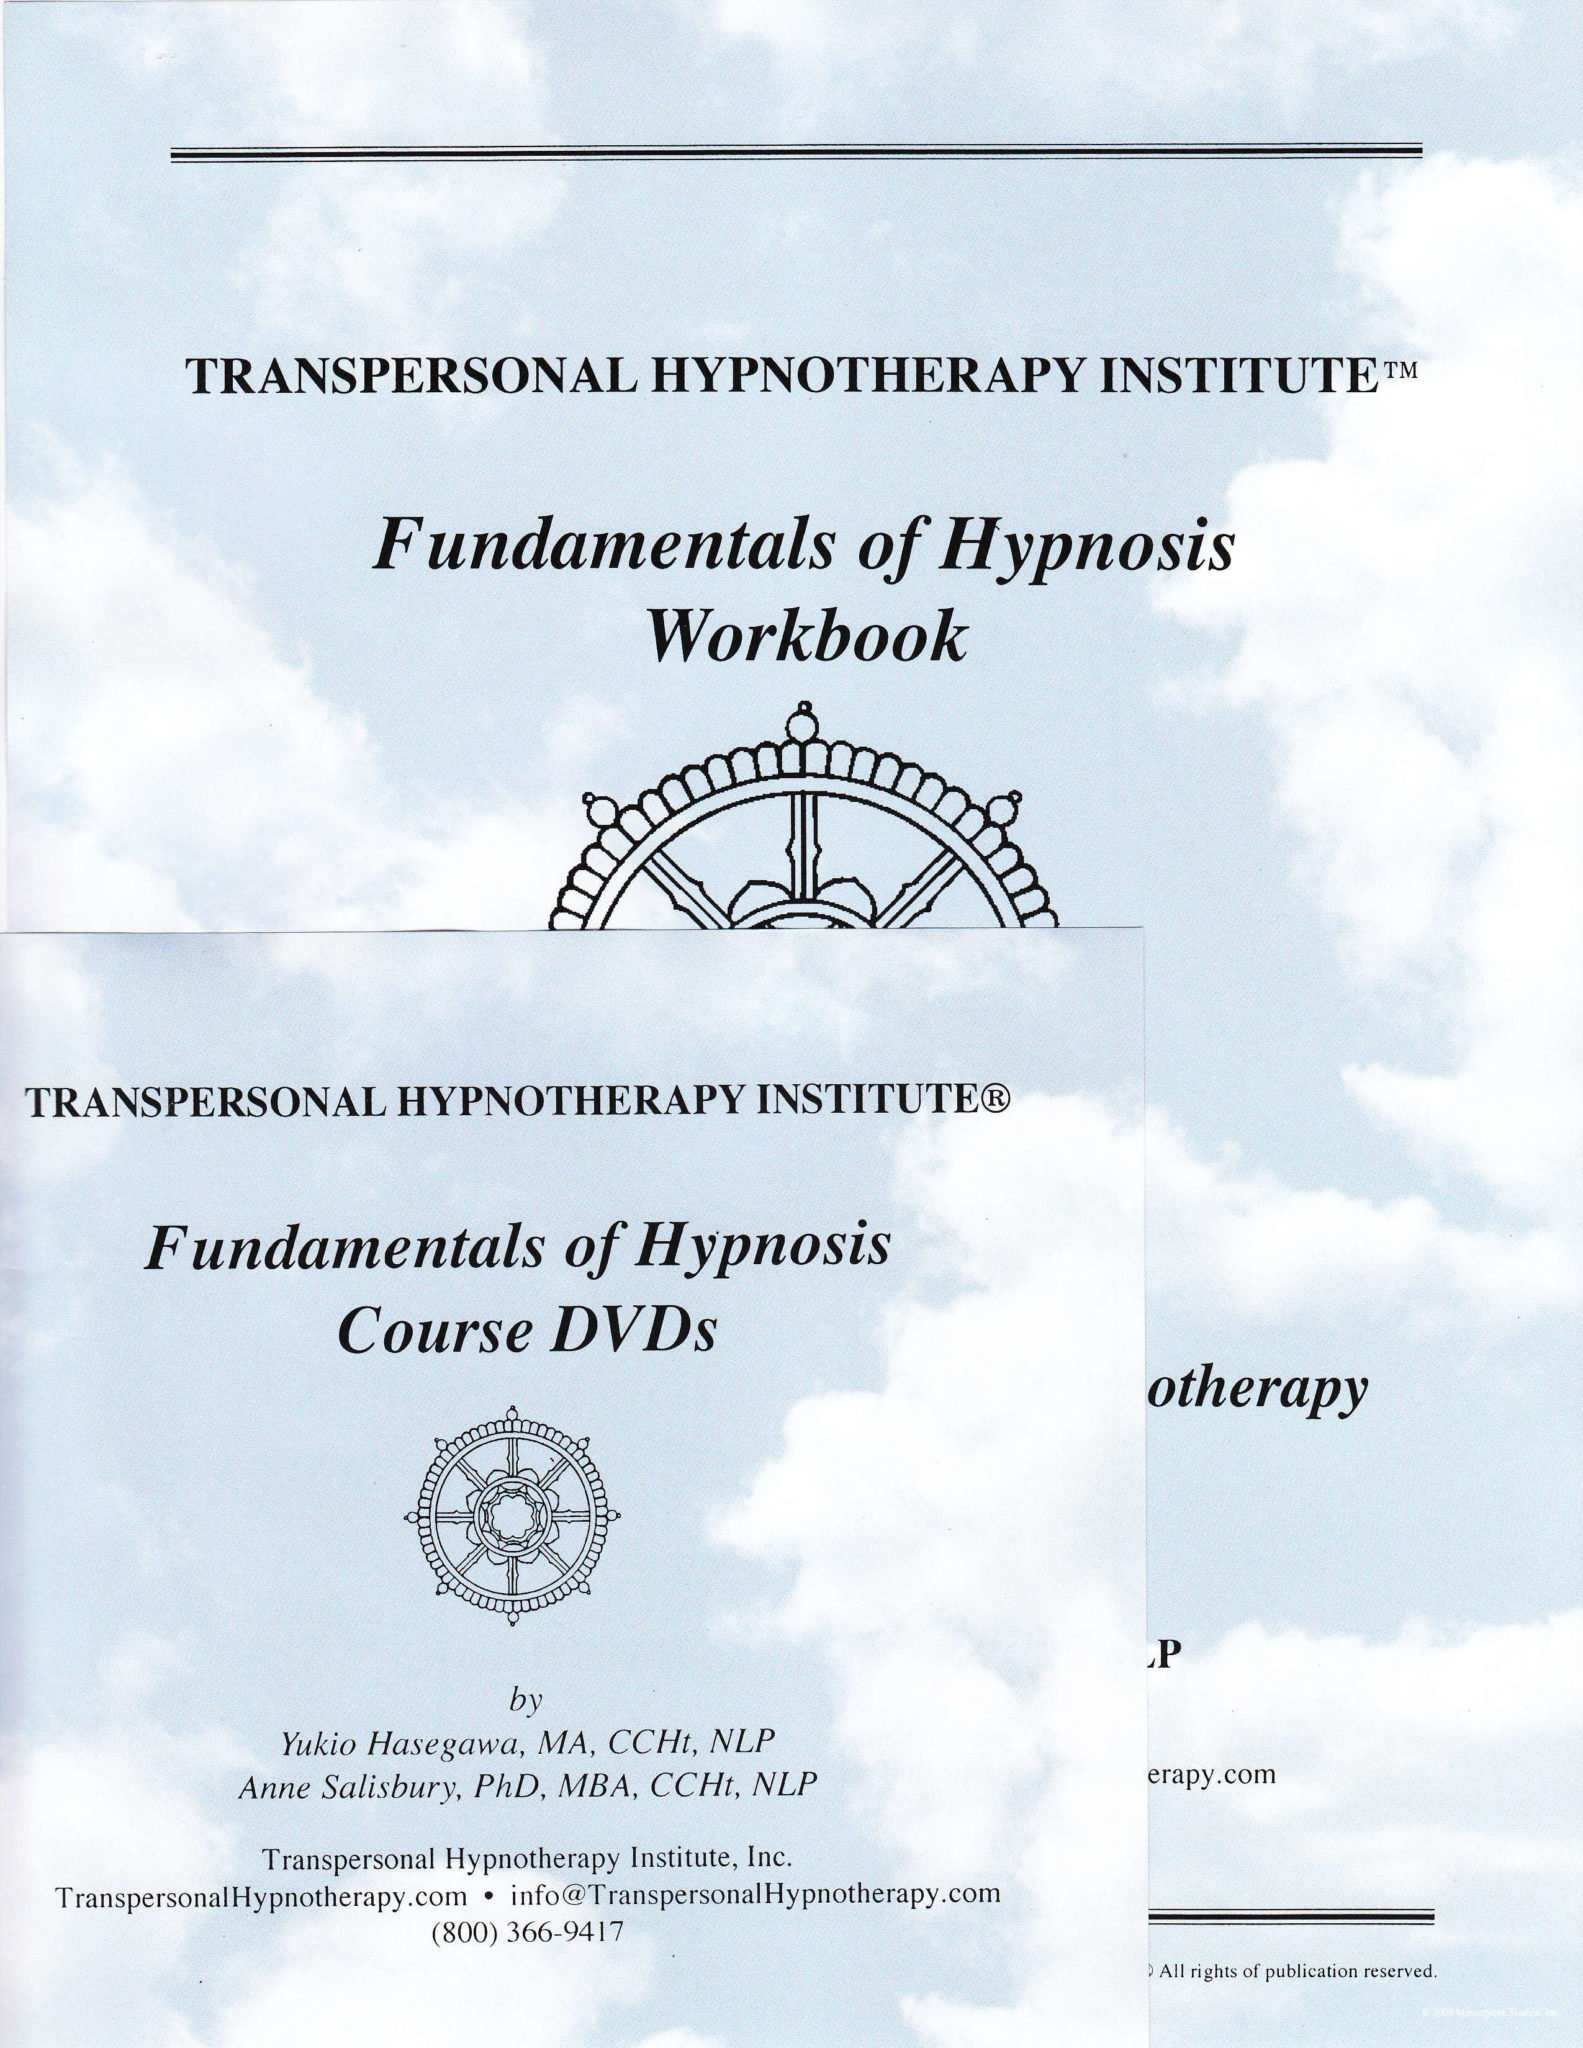 The Fundamentals of Hypnosis Course